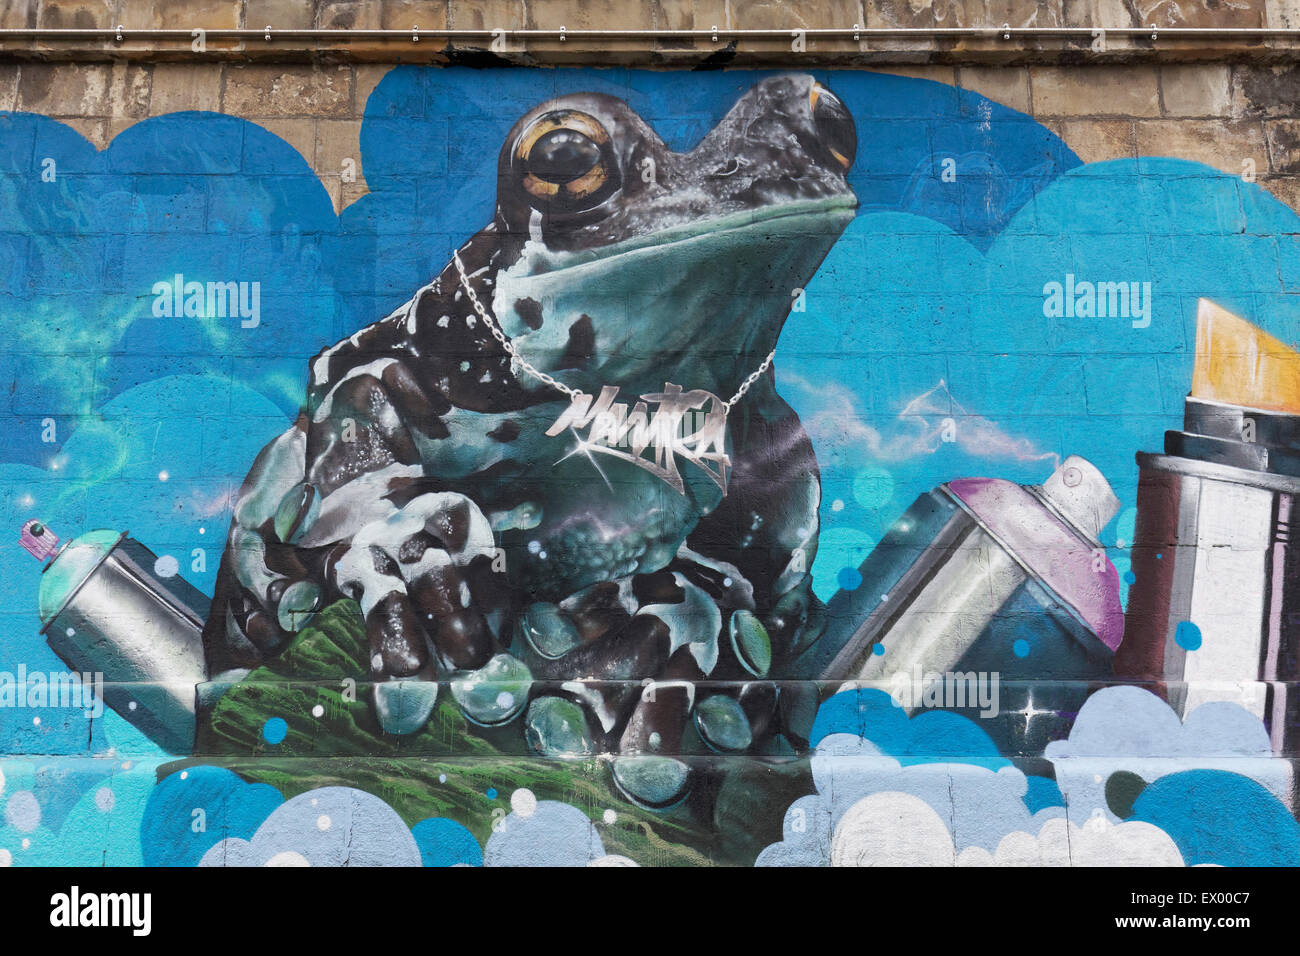 Frog with spray cans, graffiti, Danube Canal, Vienna, Austria Stock Photo